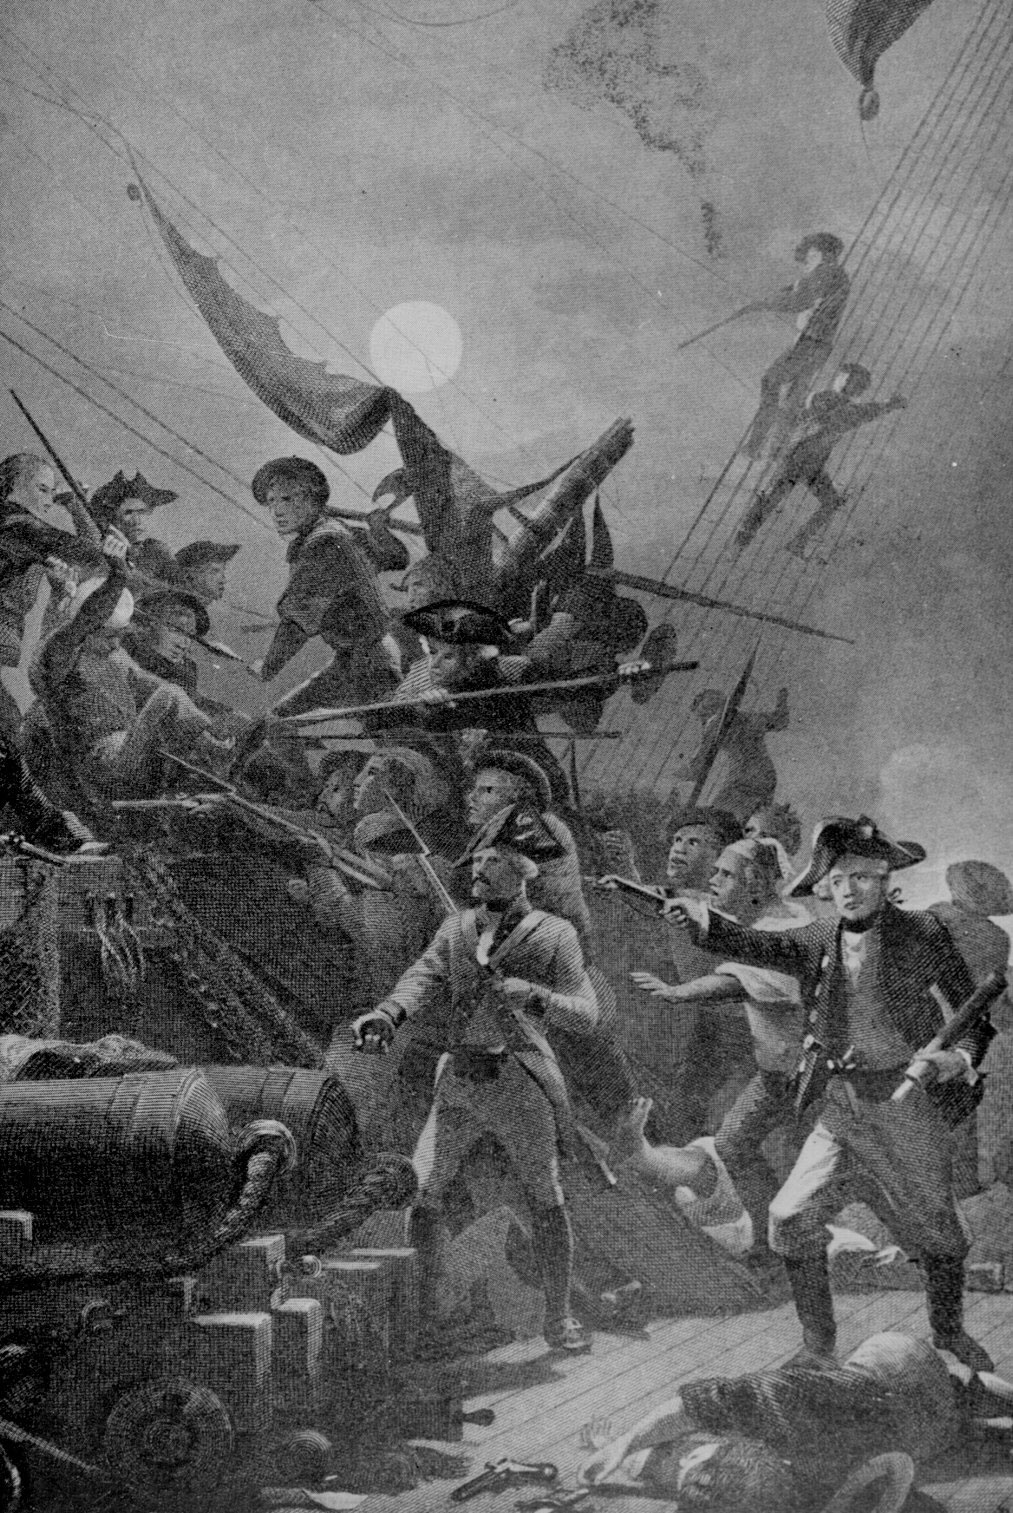 Captain John Paul Jones capturing the British frigate ship Serapis when his own ship was too damaged from battle.